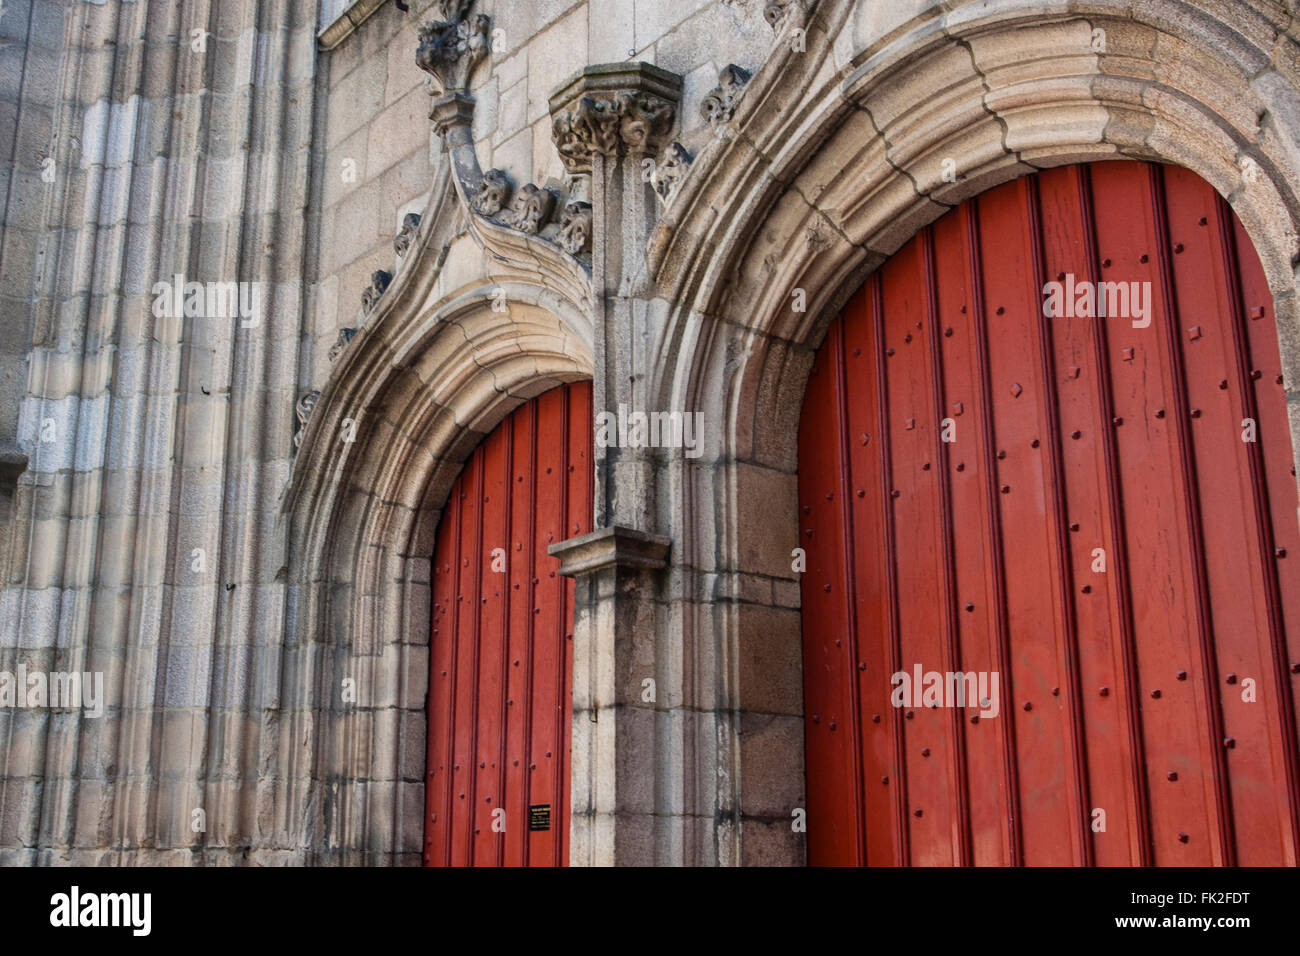 A pair of red doors marks the entrance to a church in Rennes - Stock Image